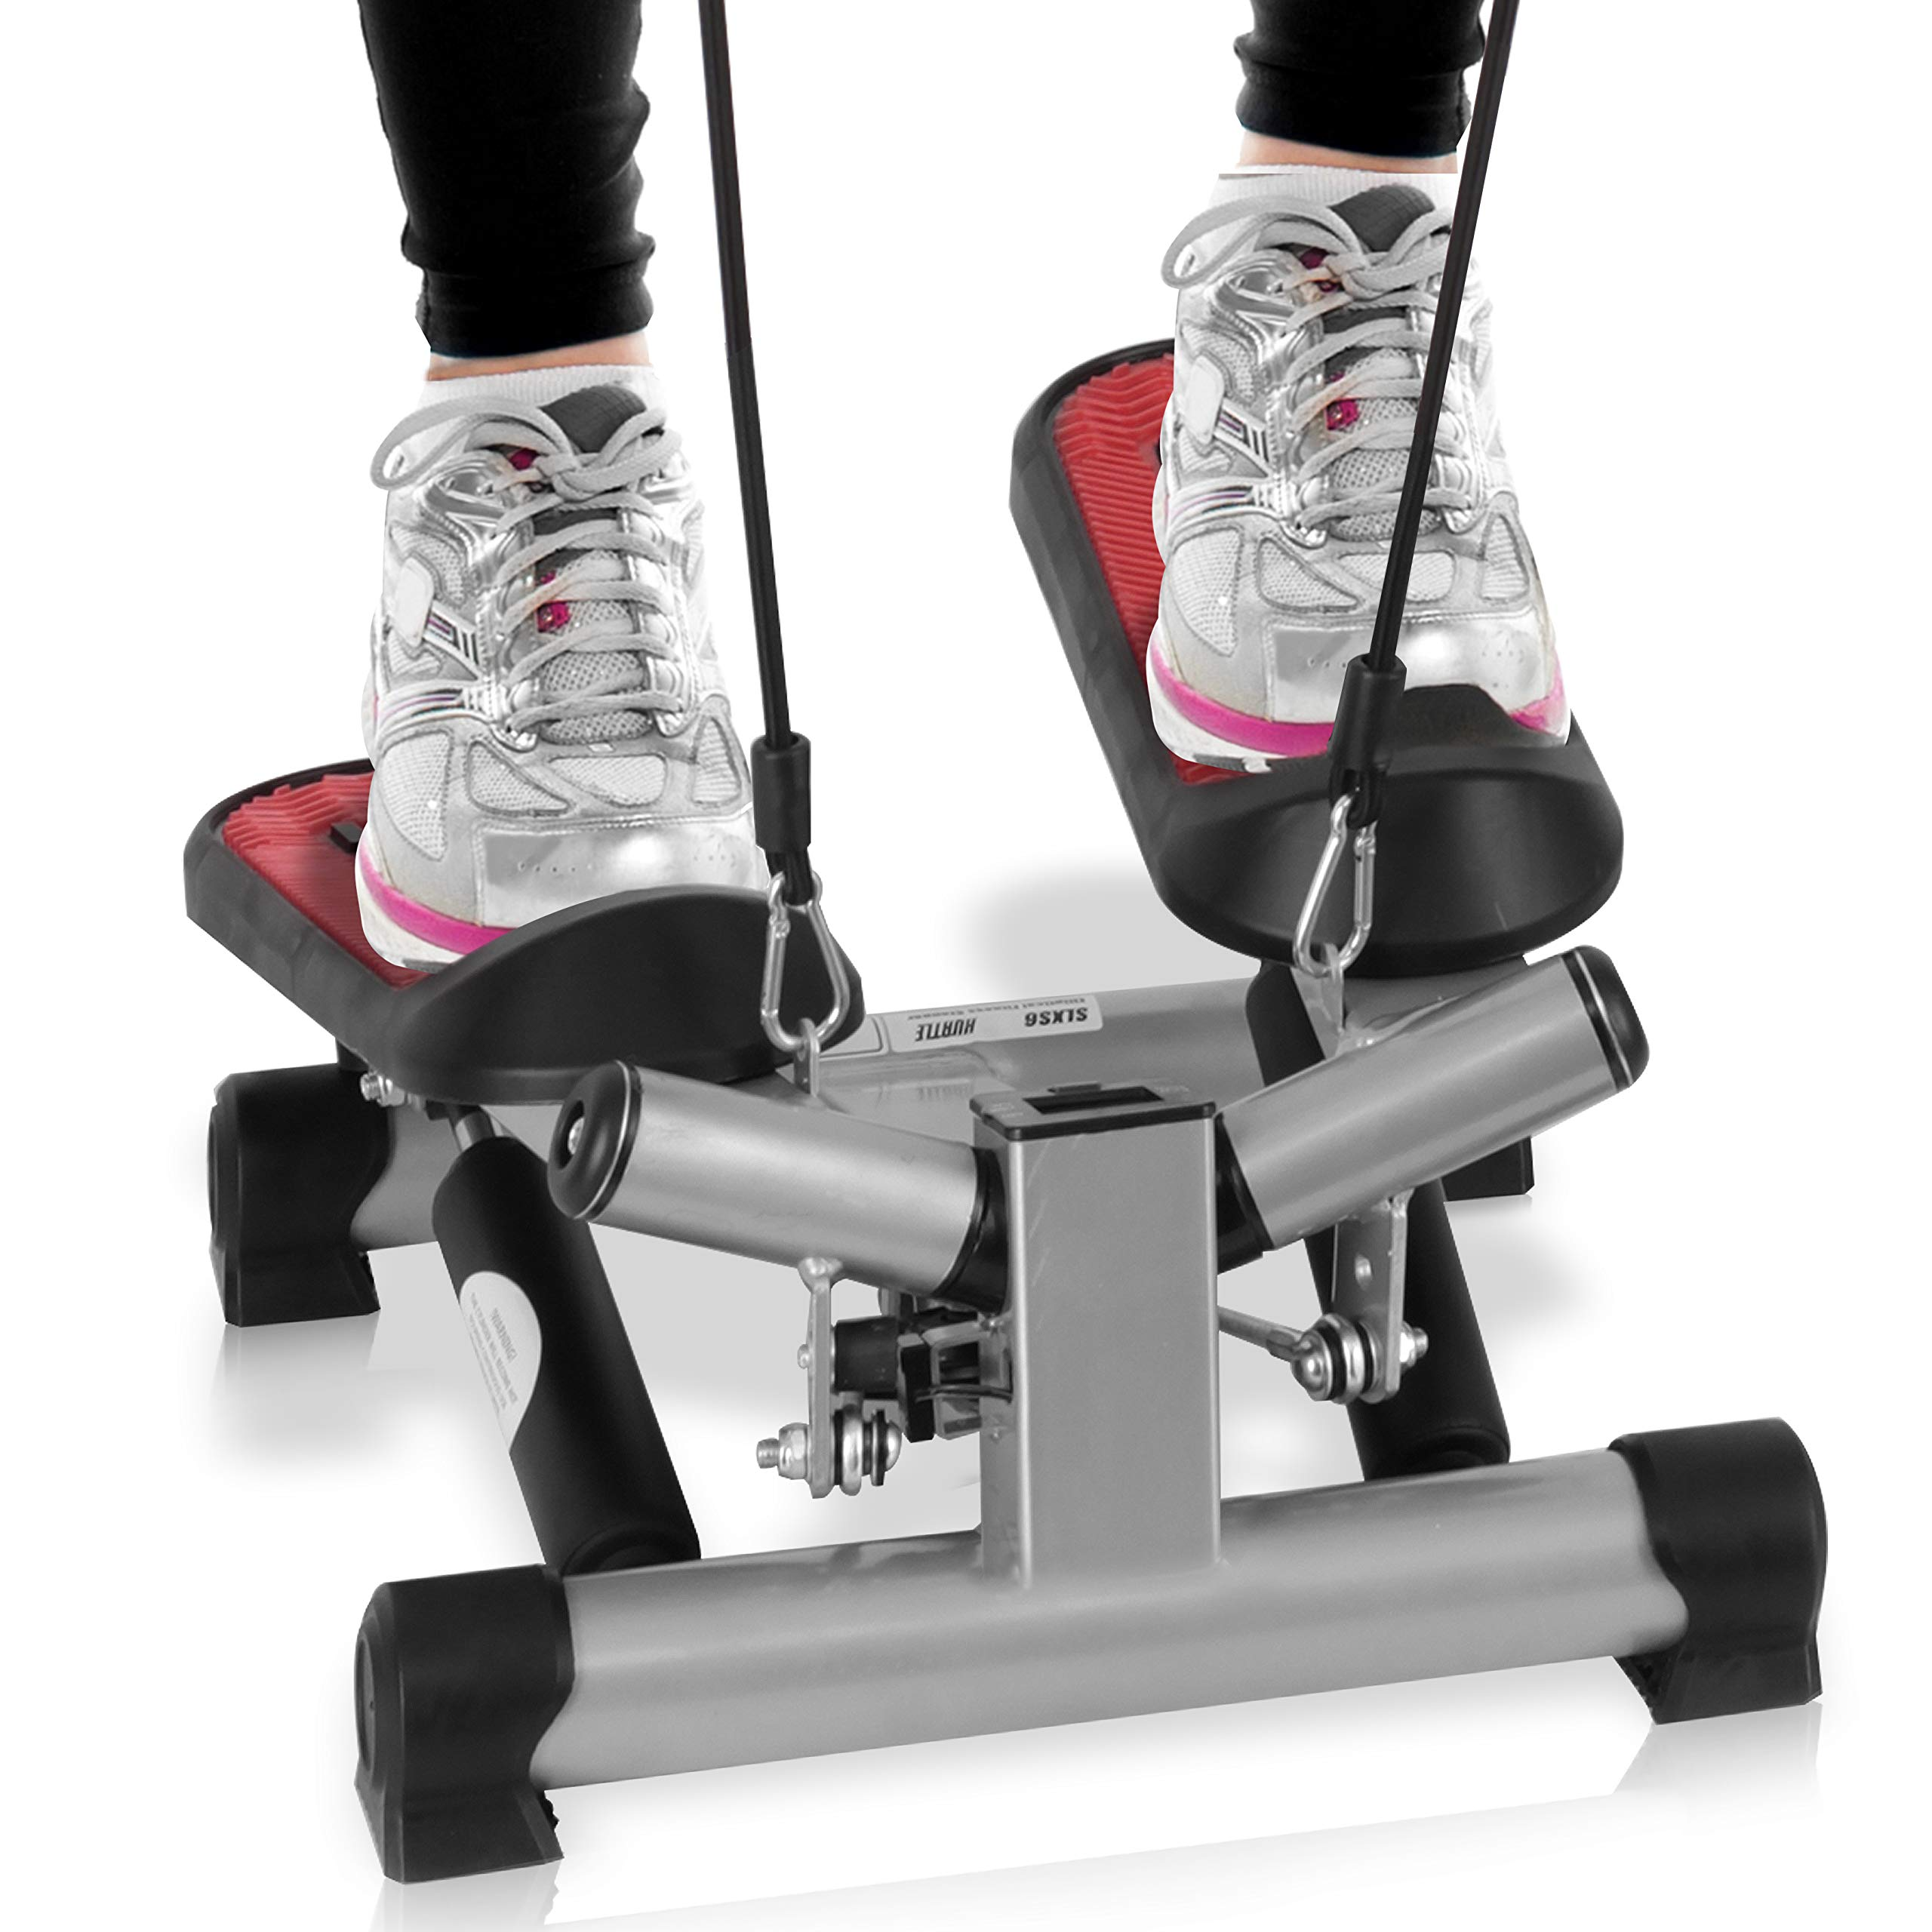 Fitness Exercise Elliptical Twister Stepper -Upgraded Quality Steel, Easy Under Desk Workout, Digital Display, Resistance Band Elliptical Trainer Burns 15% More Calories Than a Exercise Bike by SereneLife